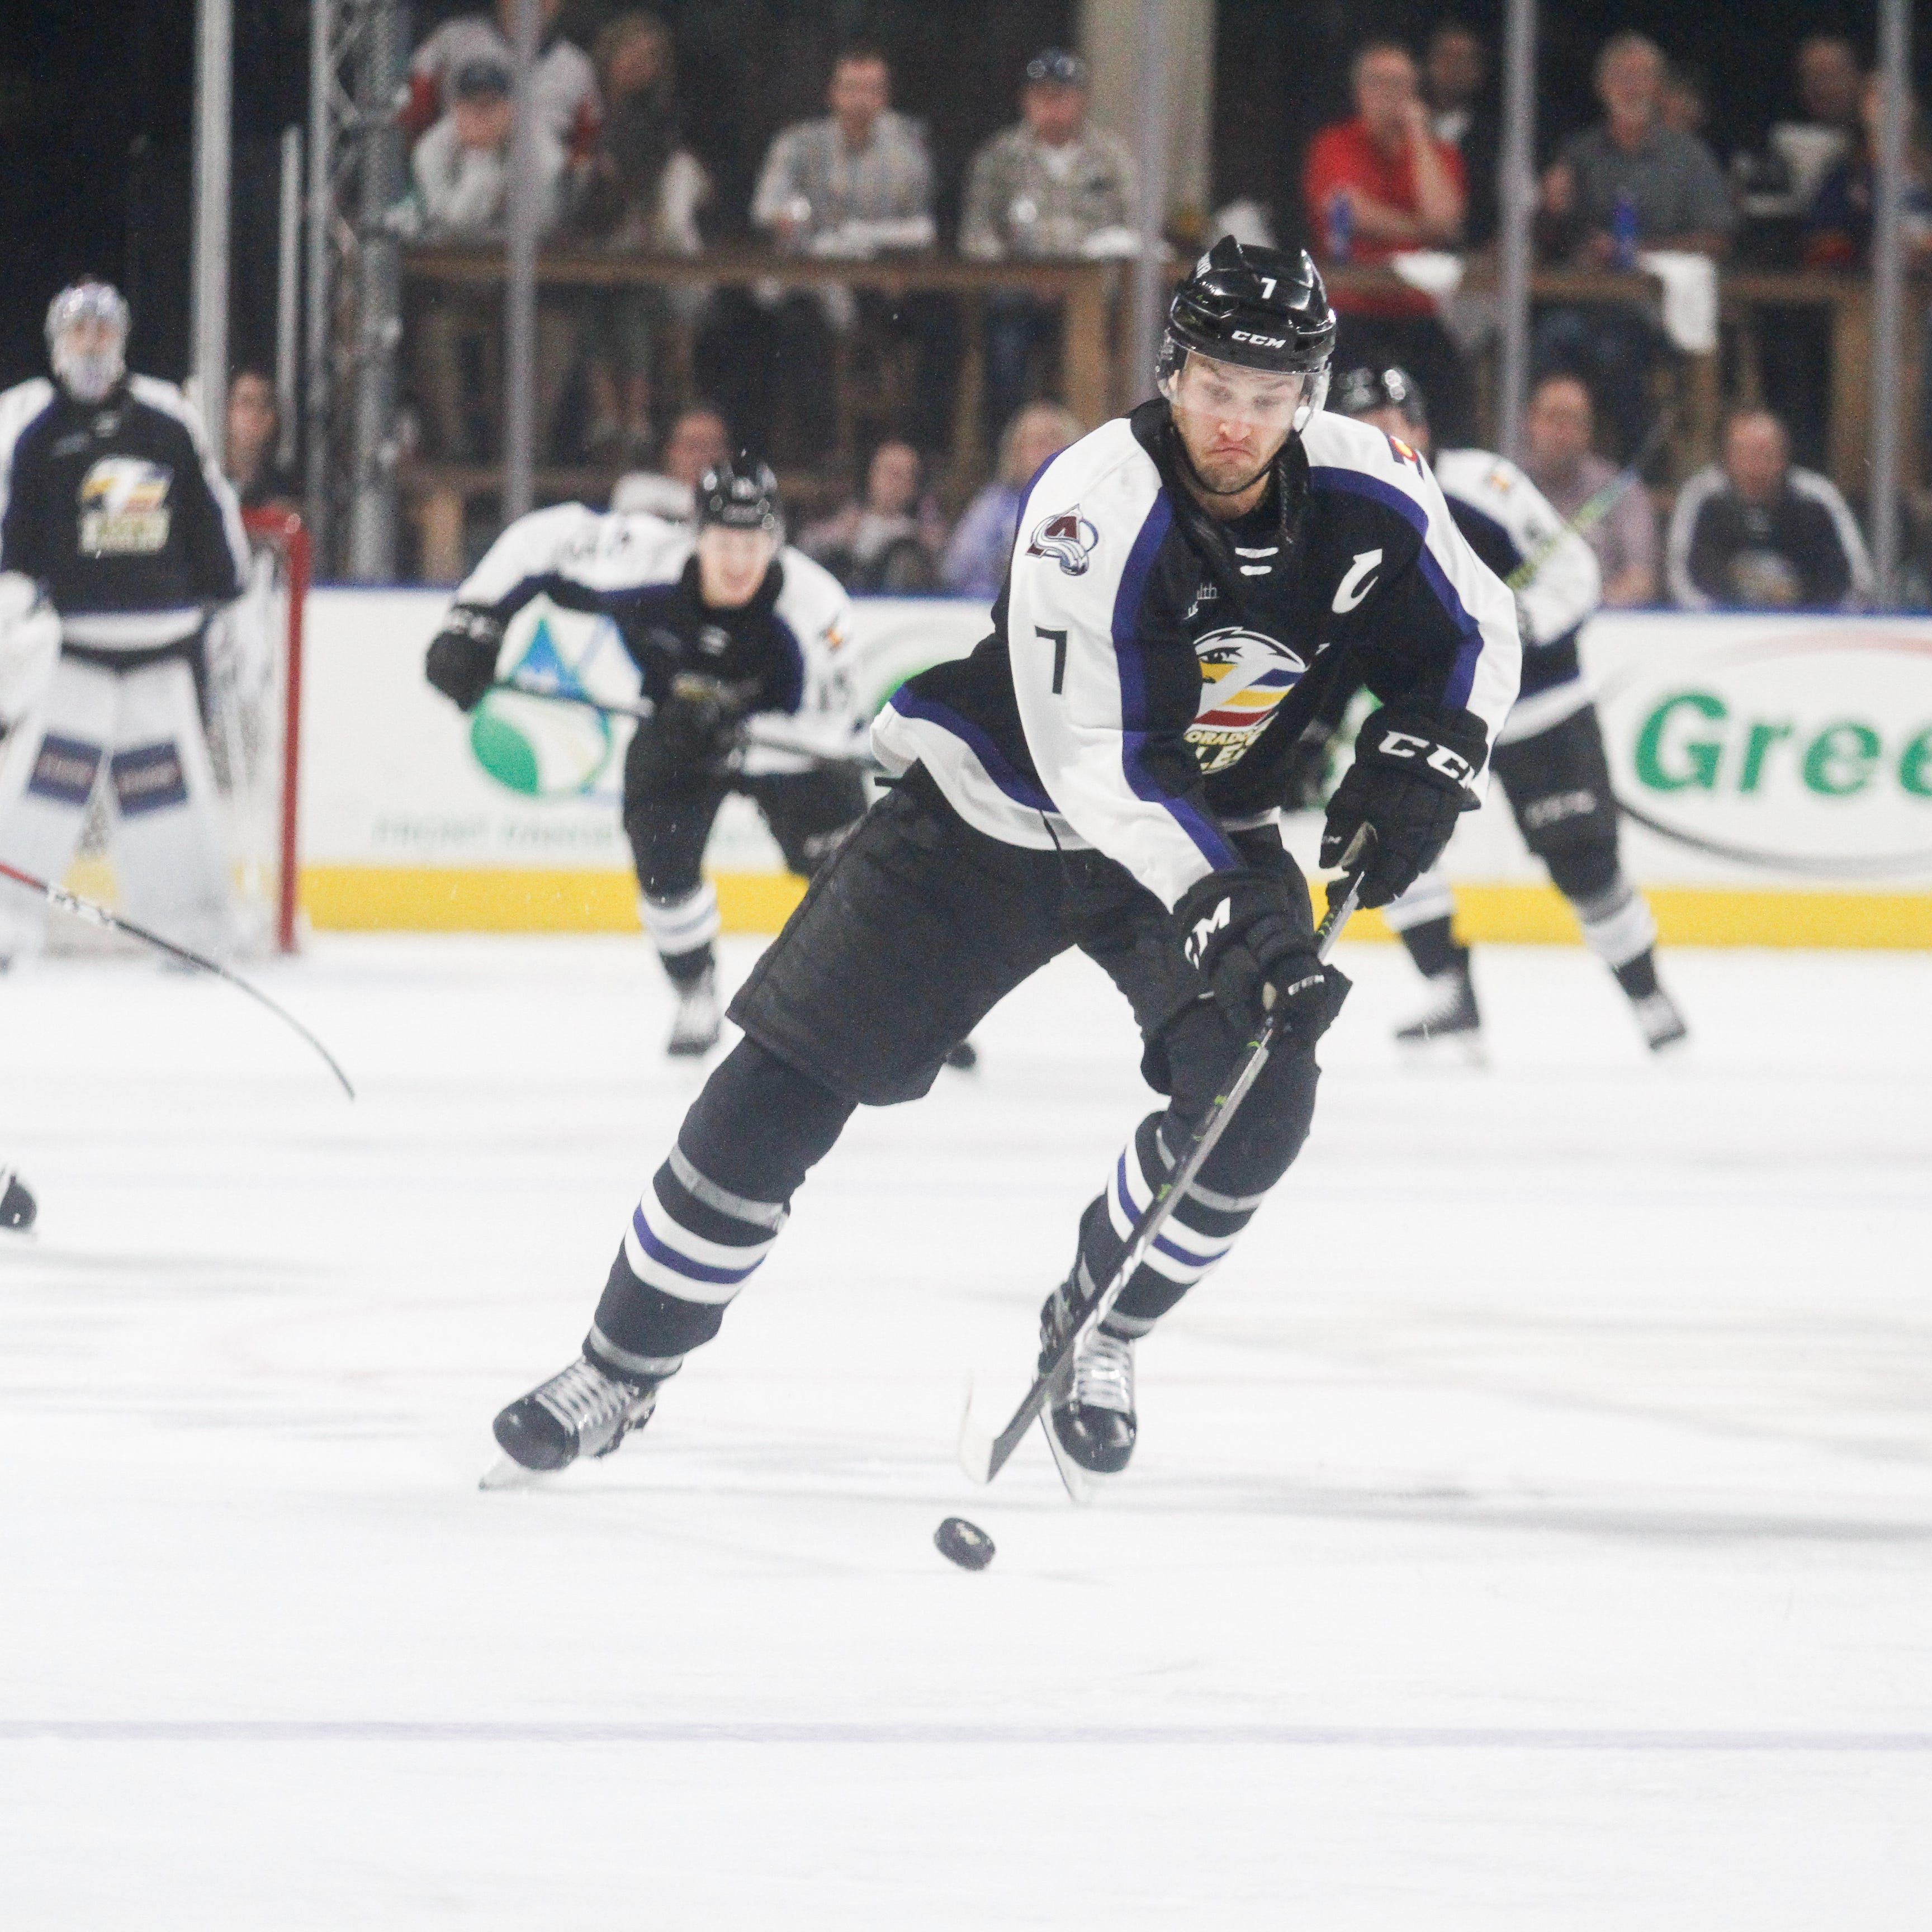 Colorado Eagles drop first game of AHL playoffs to Bakersfield